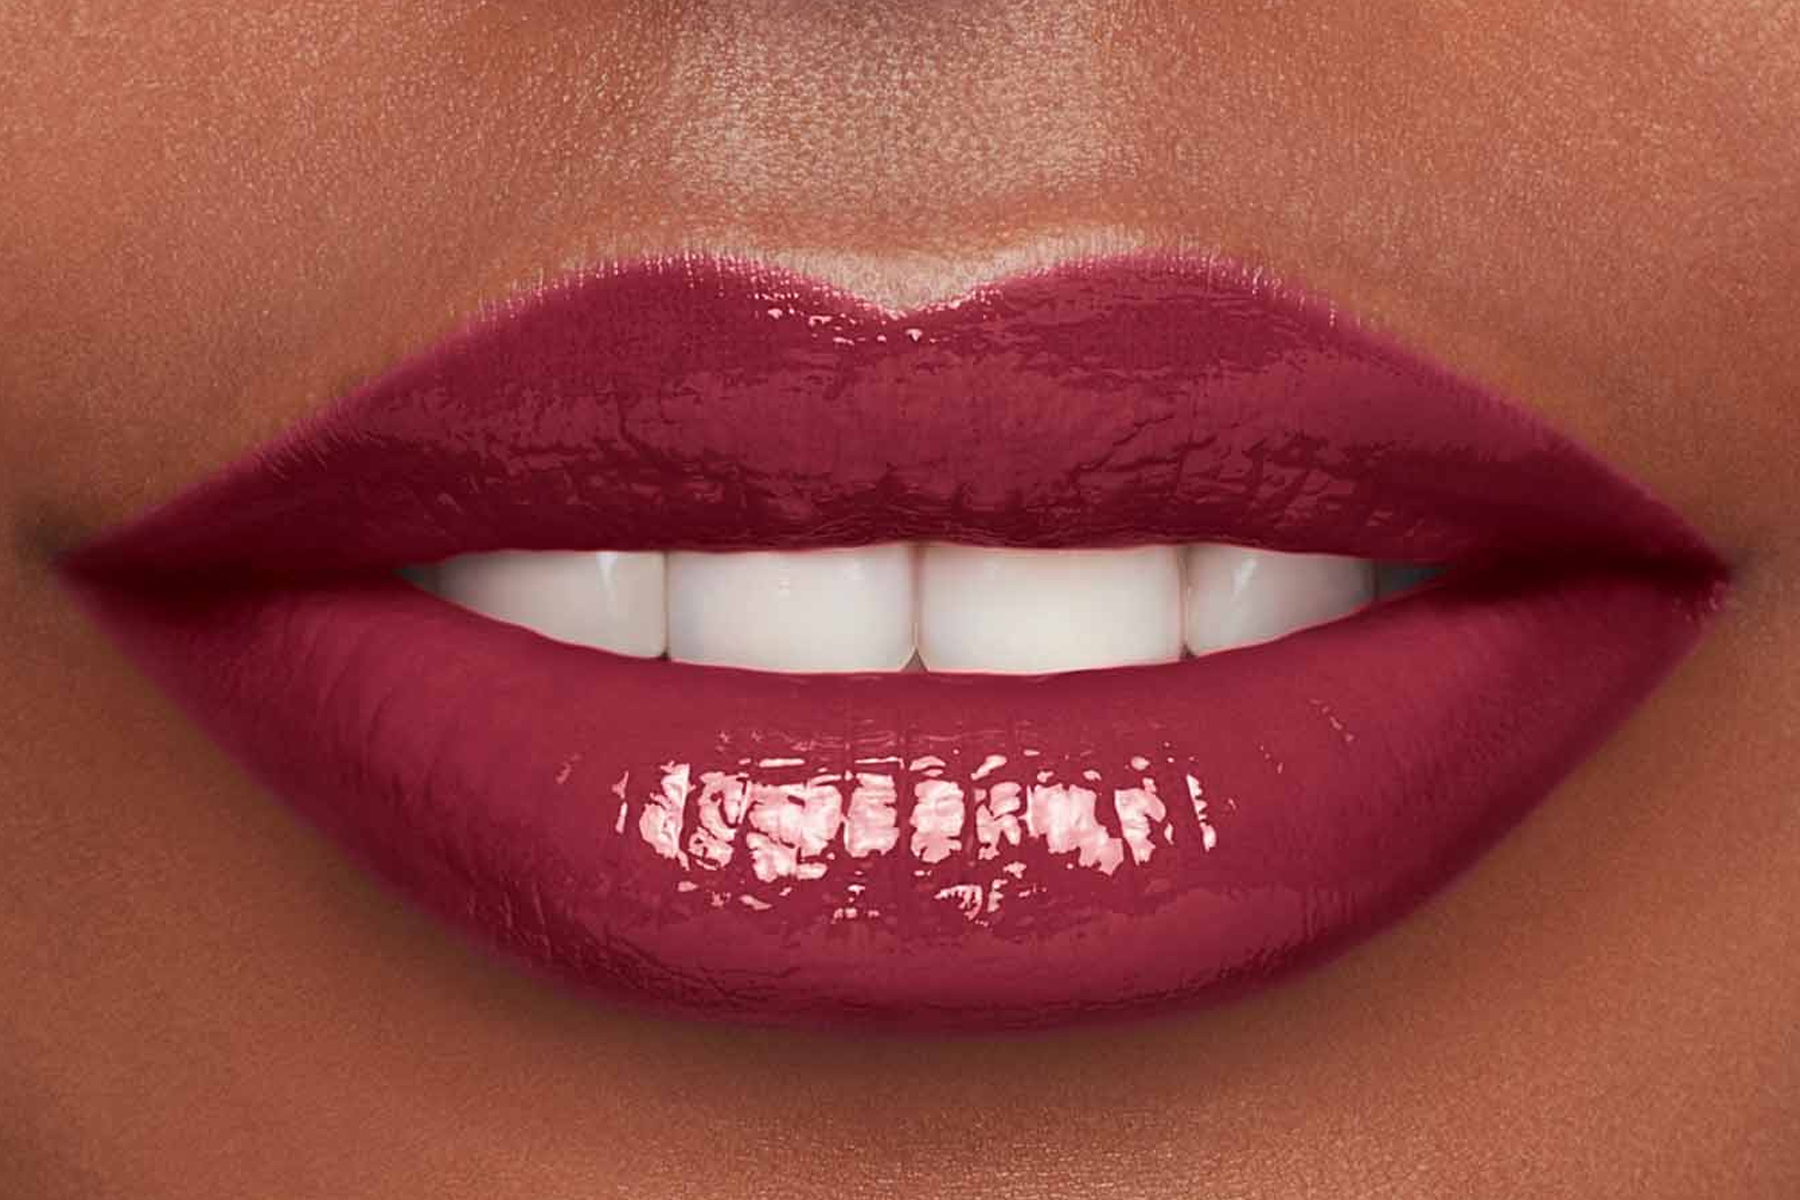 Clarins-lip-comfort-oil-intense-swatch-intense-raspberry